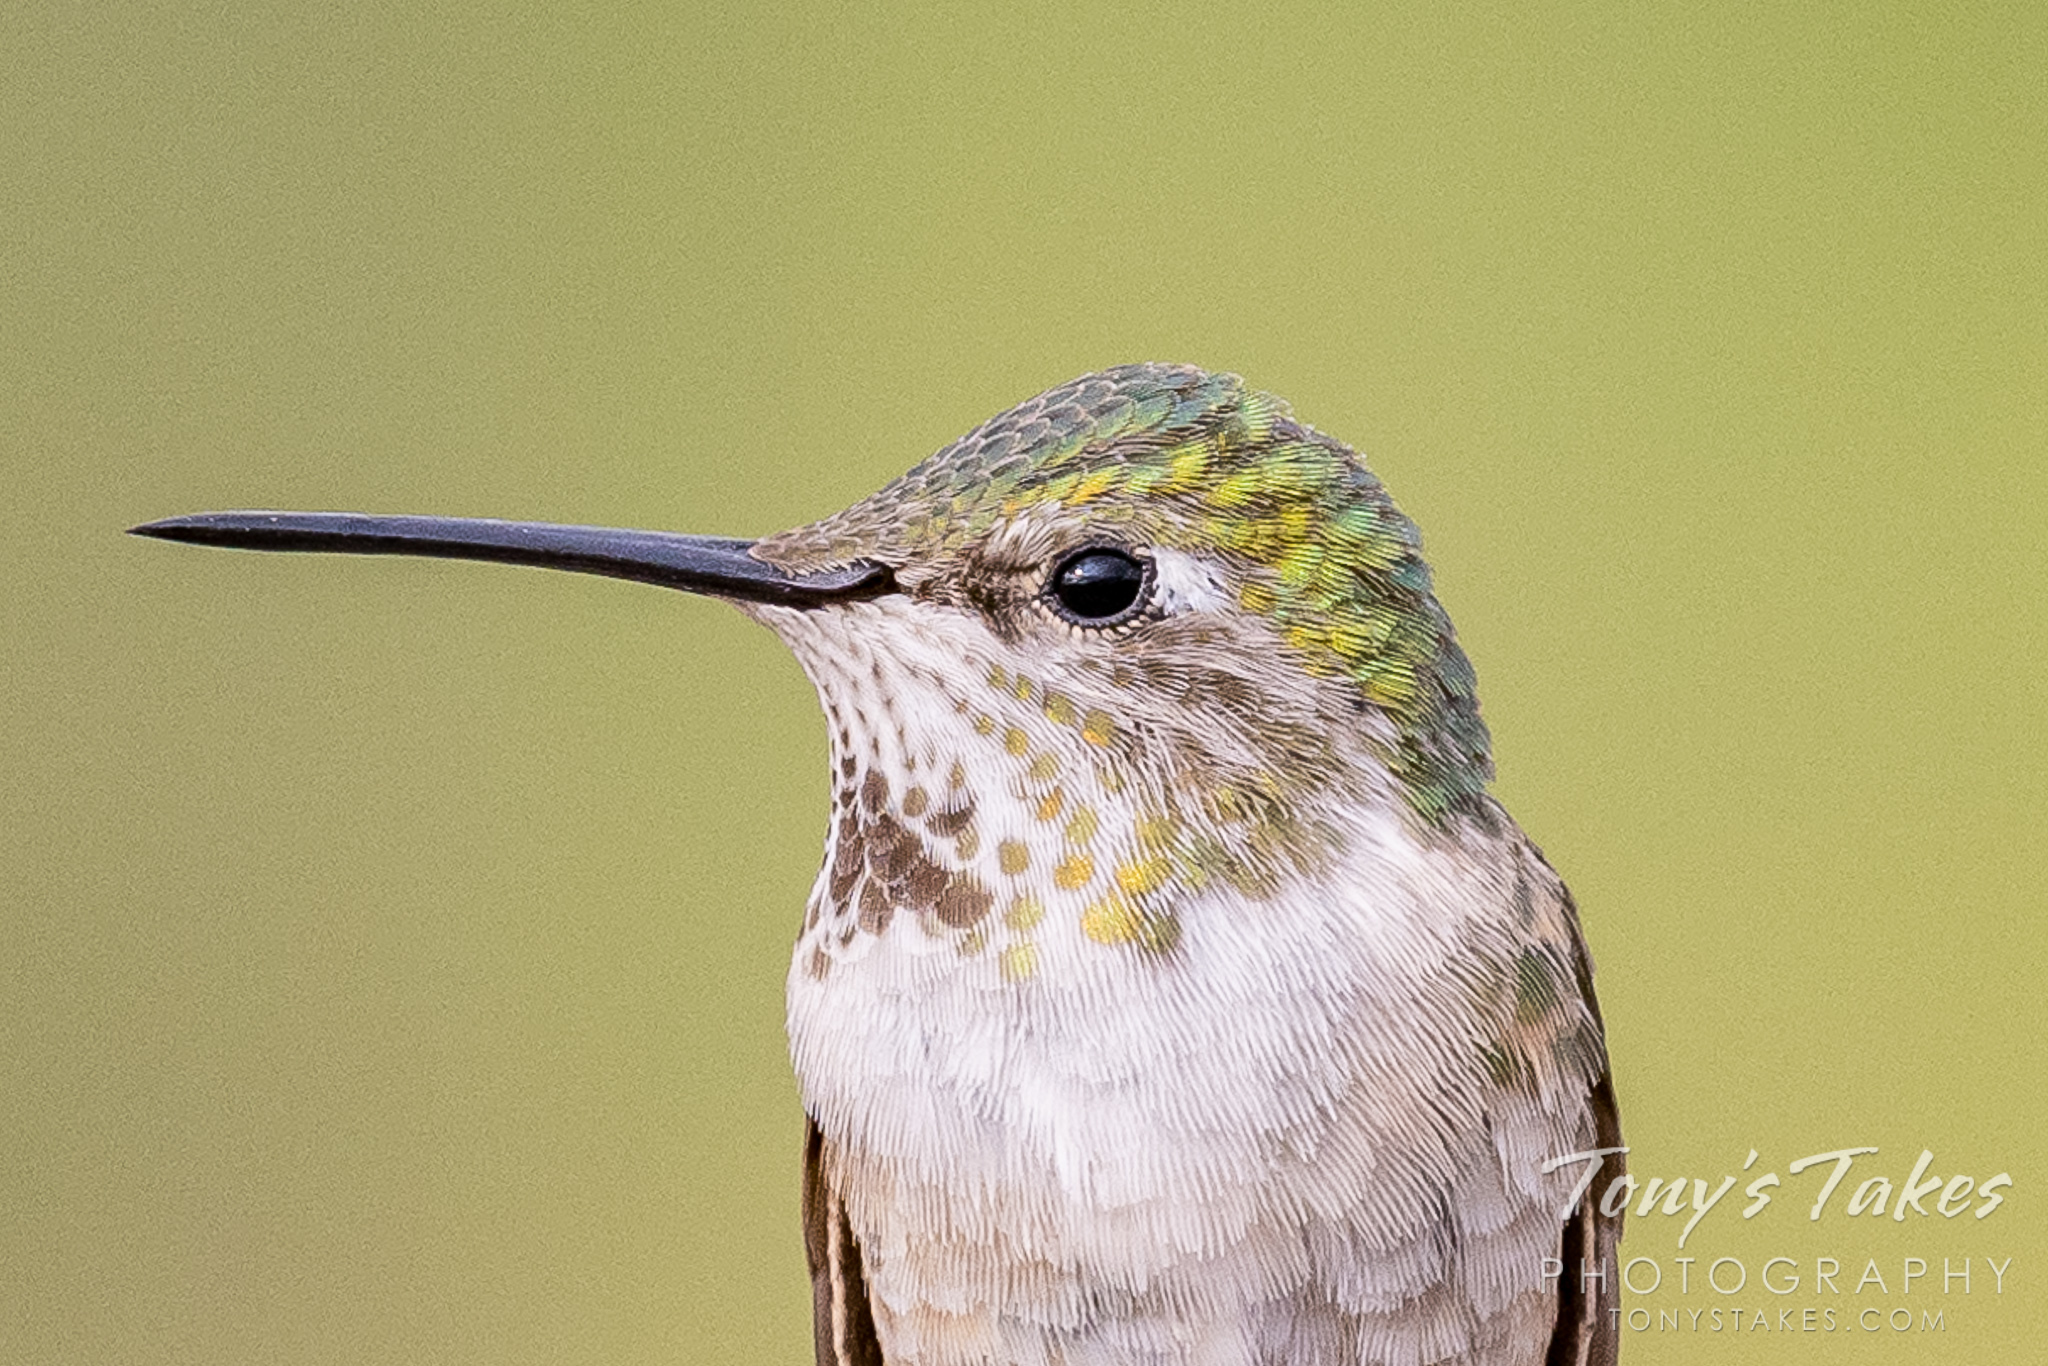 Extremely cropped hummingbird image. Canon R5, Canon EF 100-400mm f/4.5-5.6L IS II USM @ 400mm, 1/800, f/8, ISO 640.